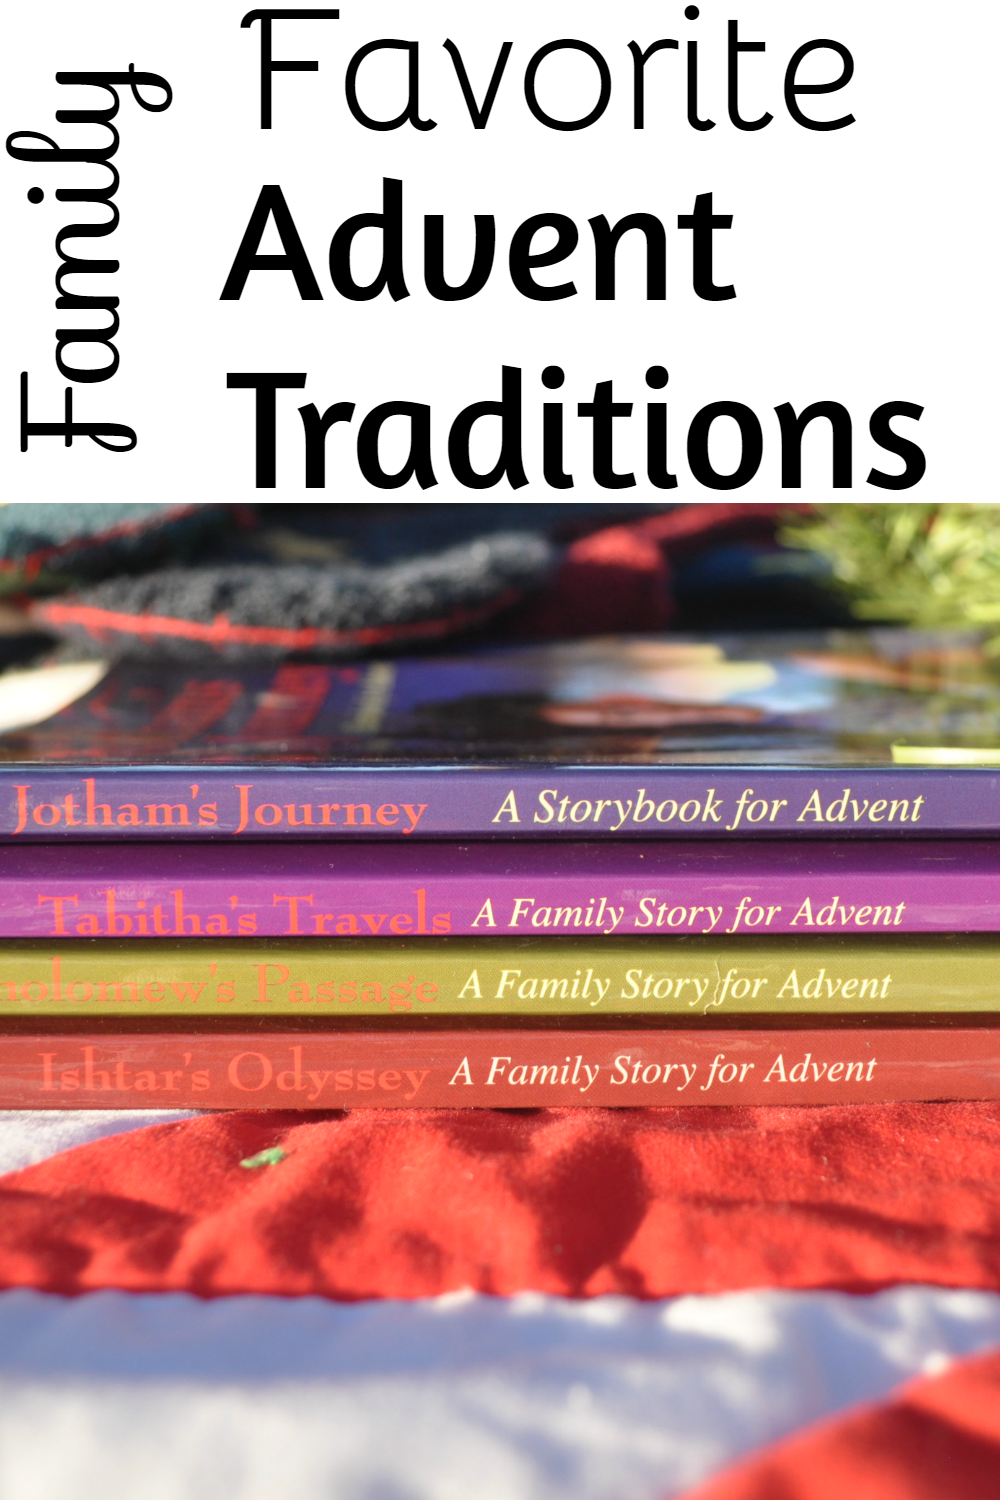 Family Advent Traditions: Books, Advent Wreath, Nativity Sets, and the Tree